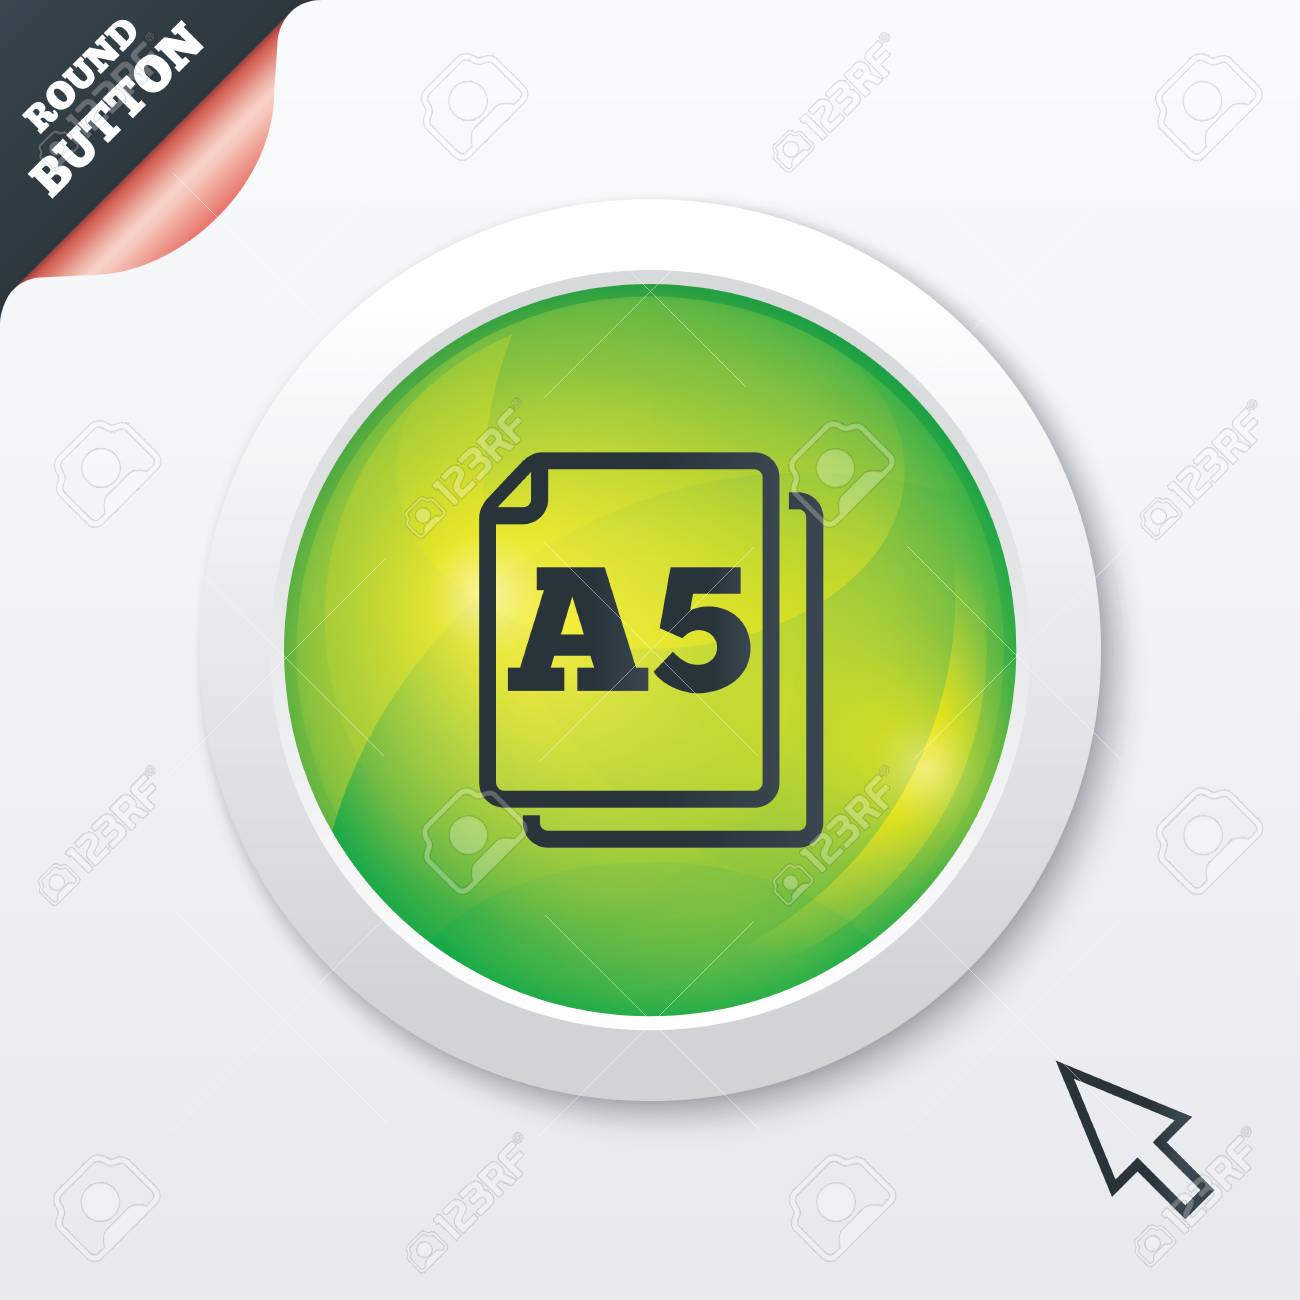 Paper size A5 standard icon. File document symbol. Green shiny button. Modern UI website button with mouse cursor pointer. Vector Stock Vector - 26851556